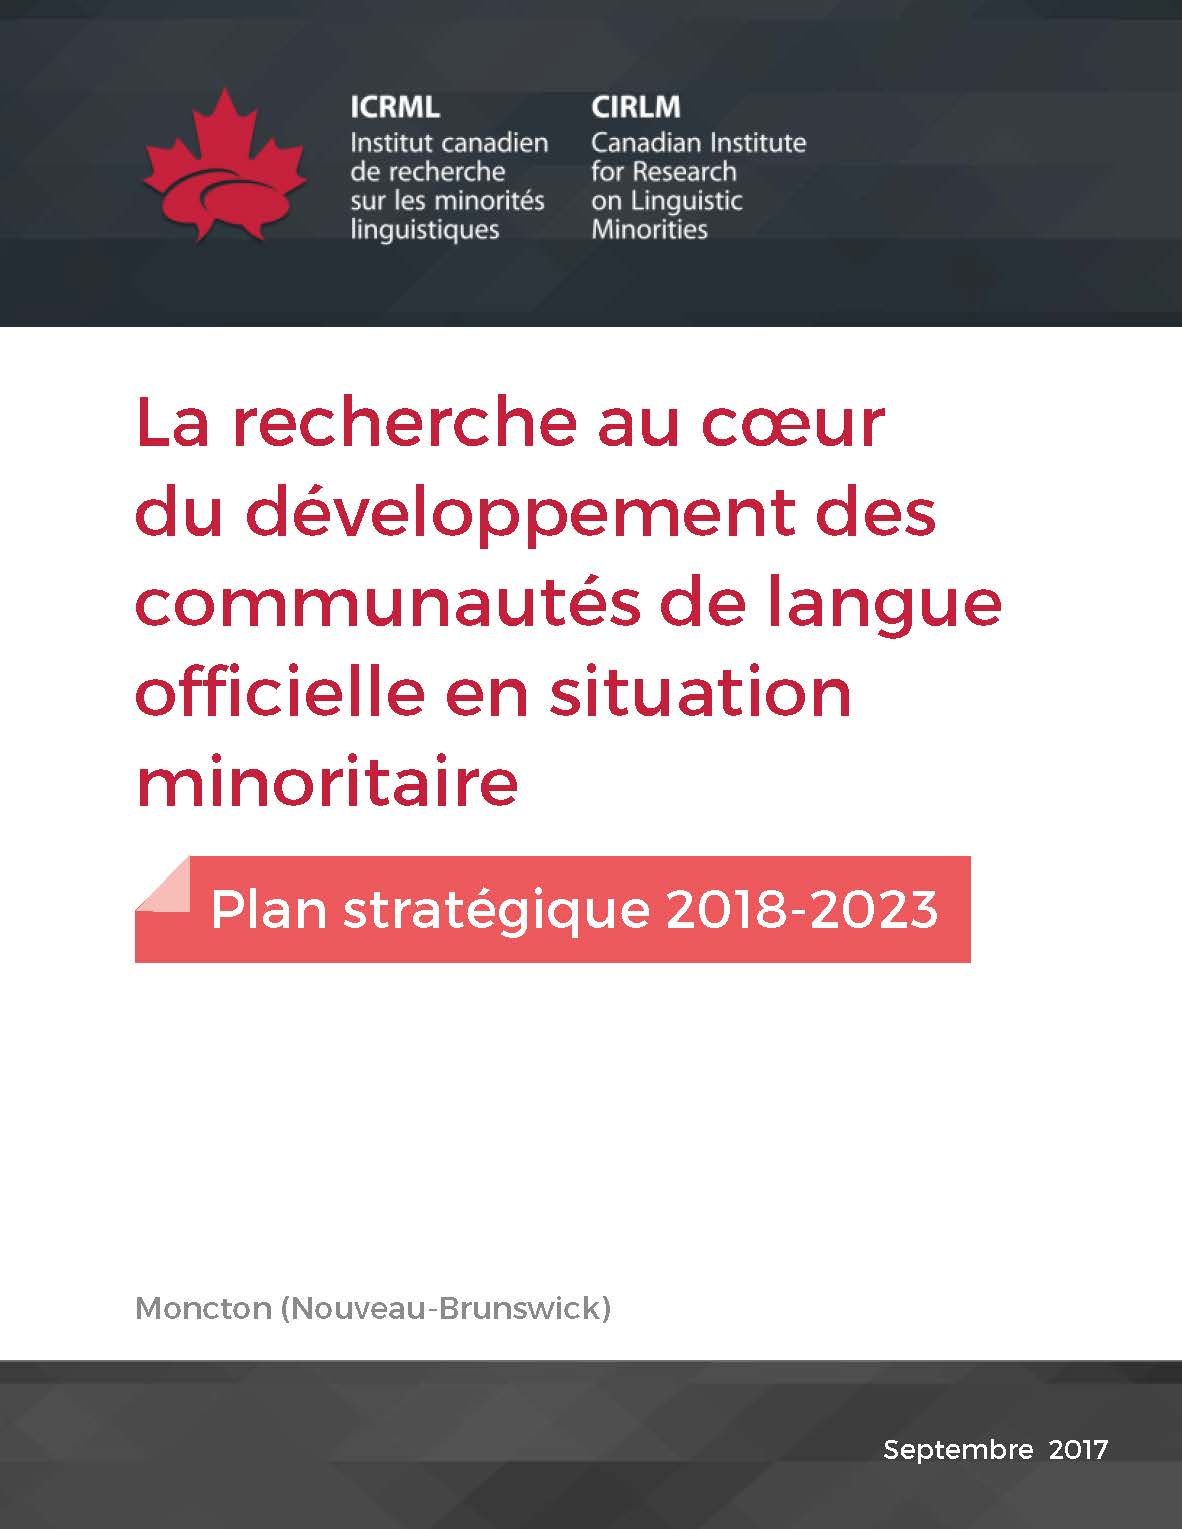 Pages de Plan ICRML 2018 2023